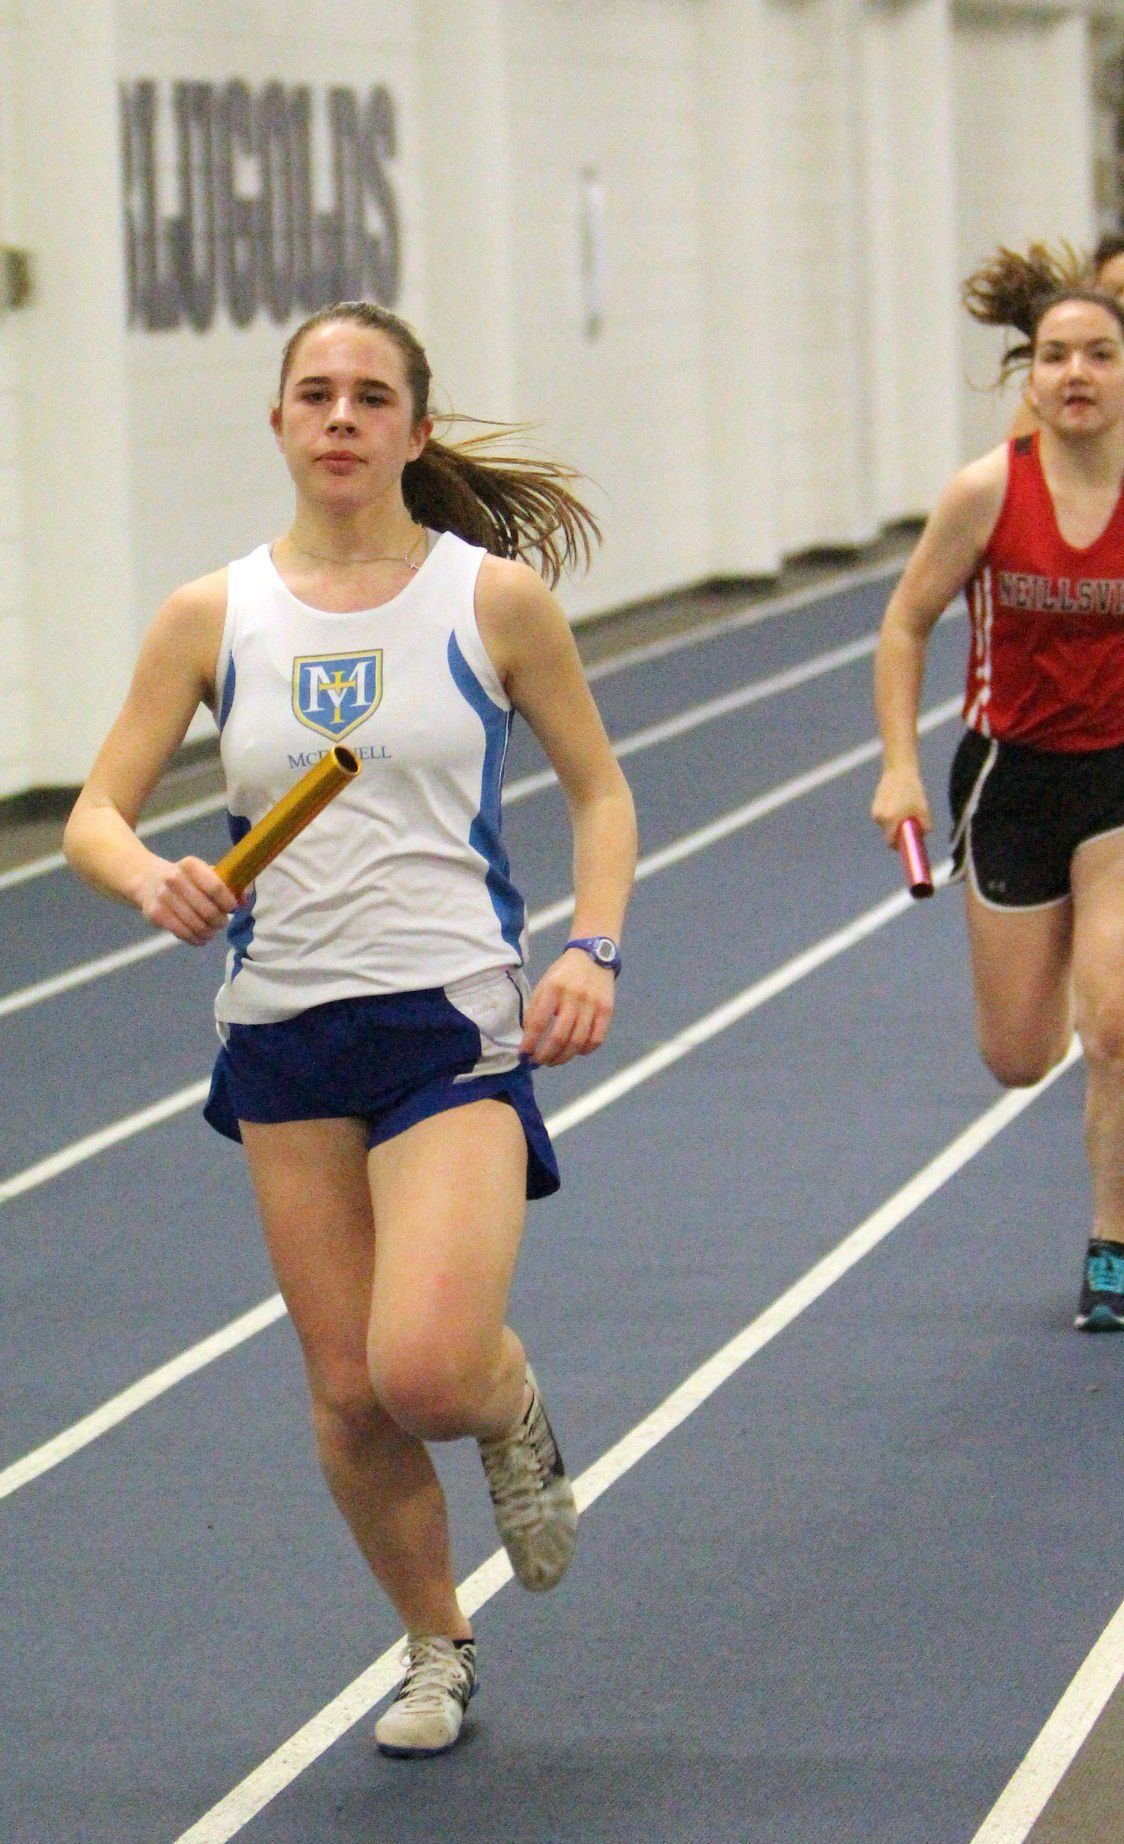 McDonell Track and Field Scrimmage at UW-Eau Claire 4-13-18